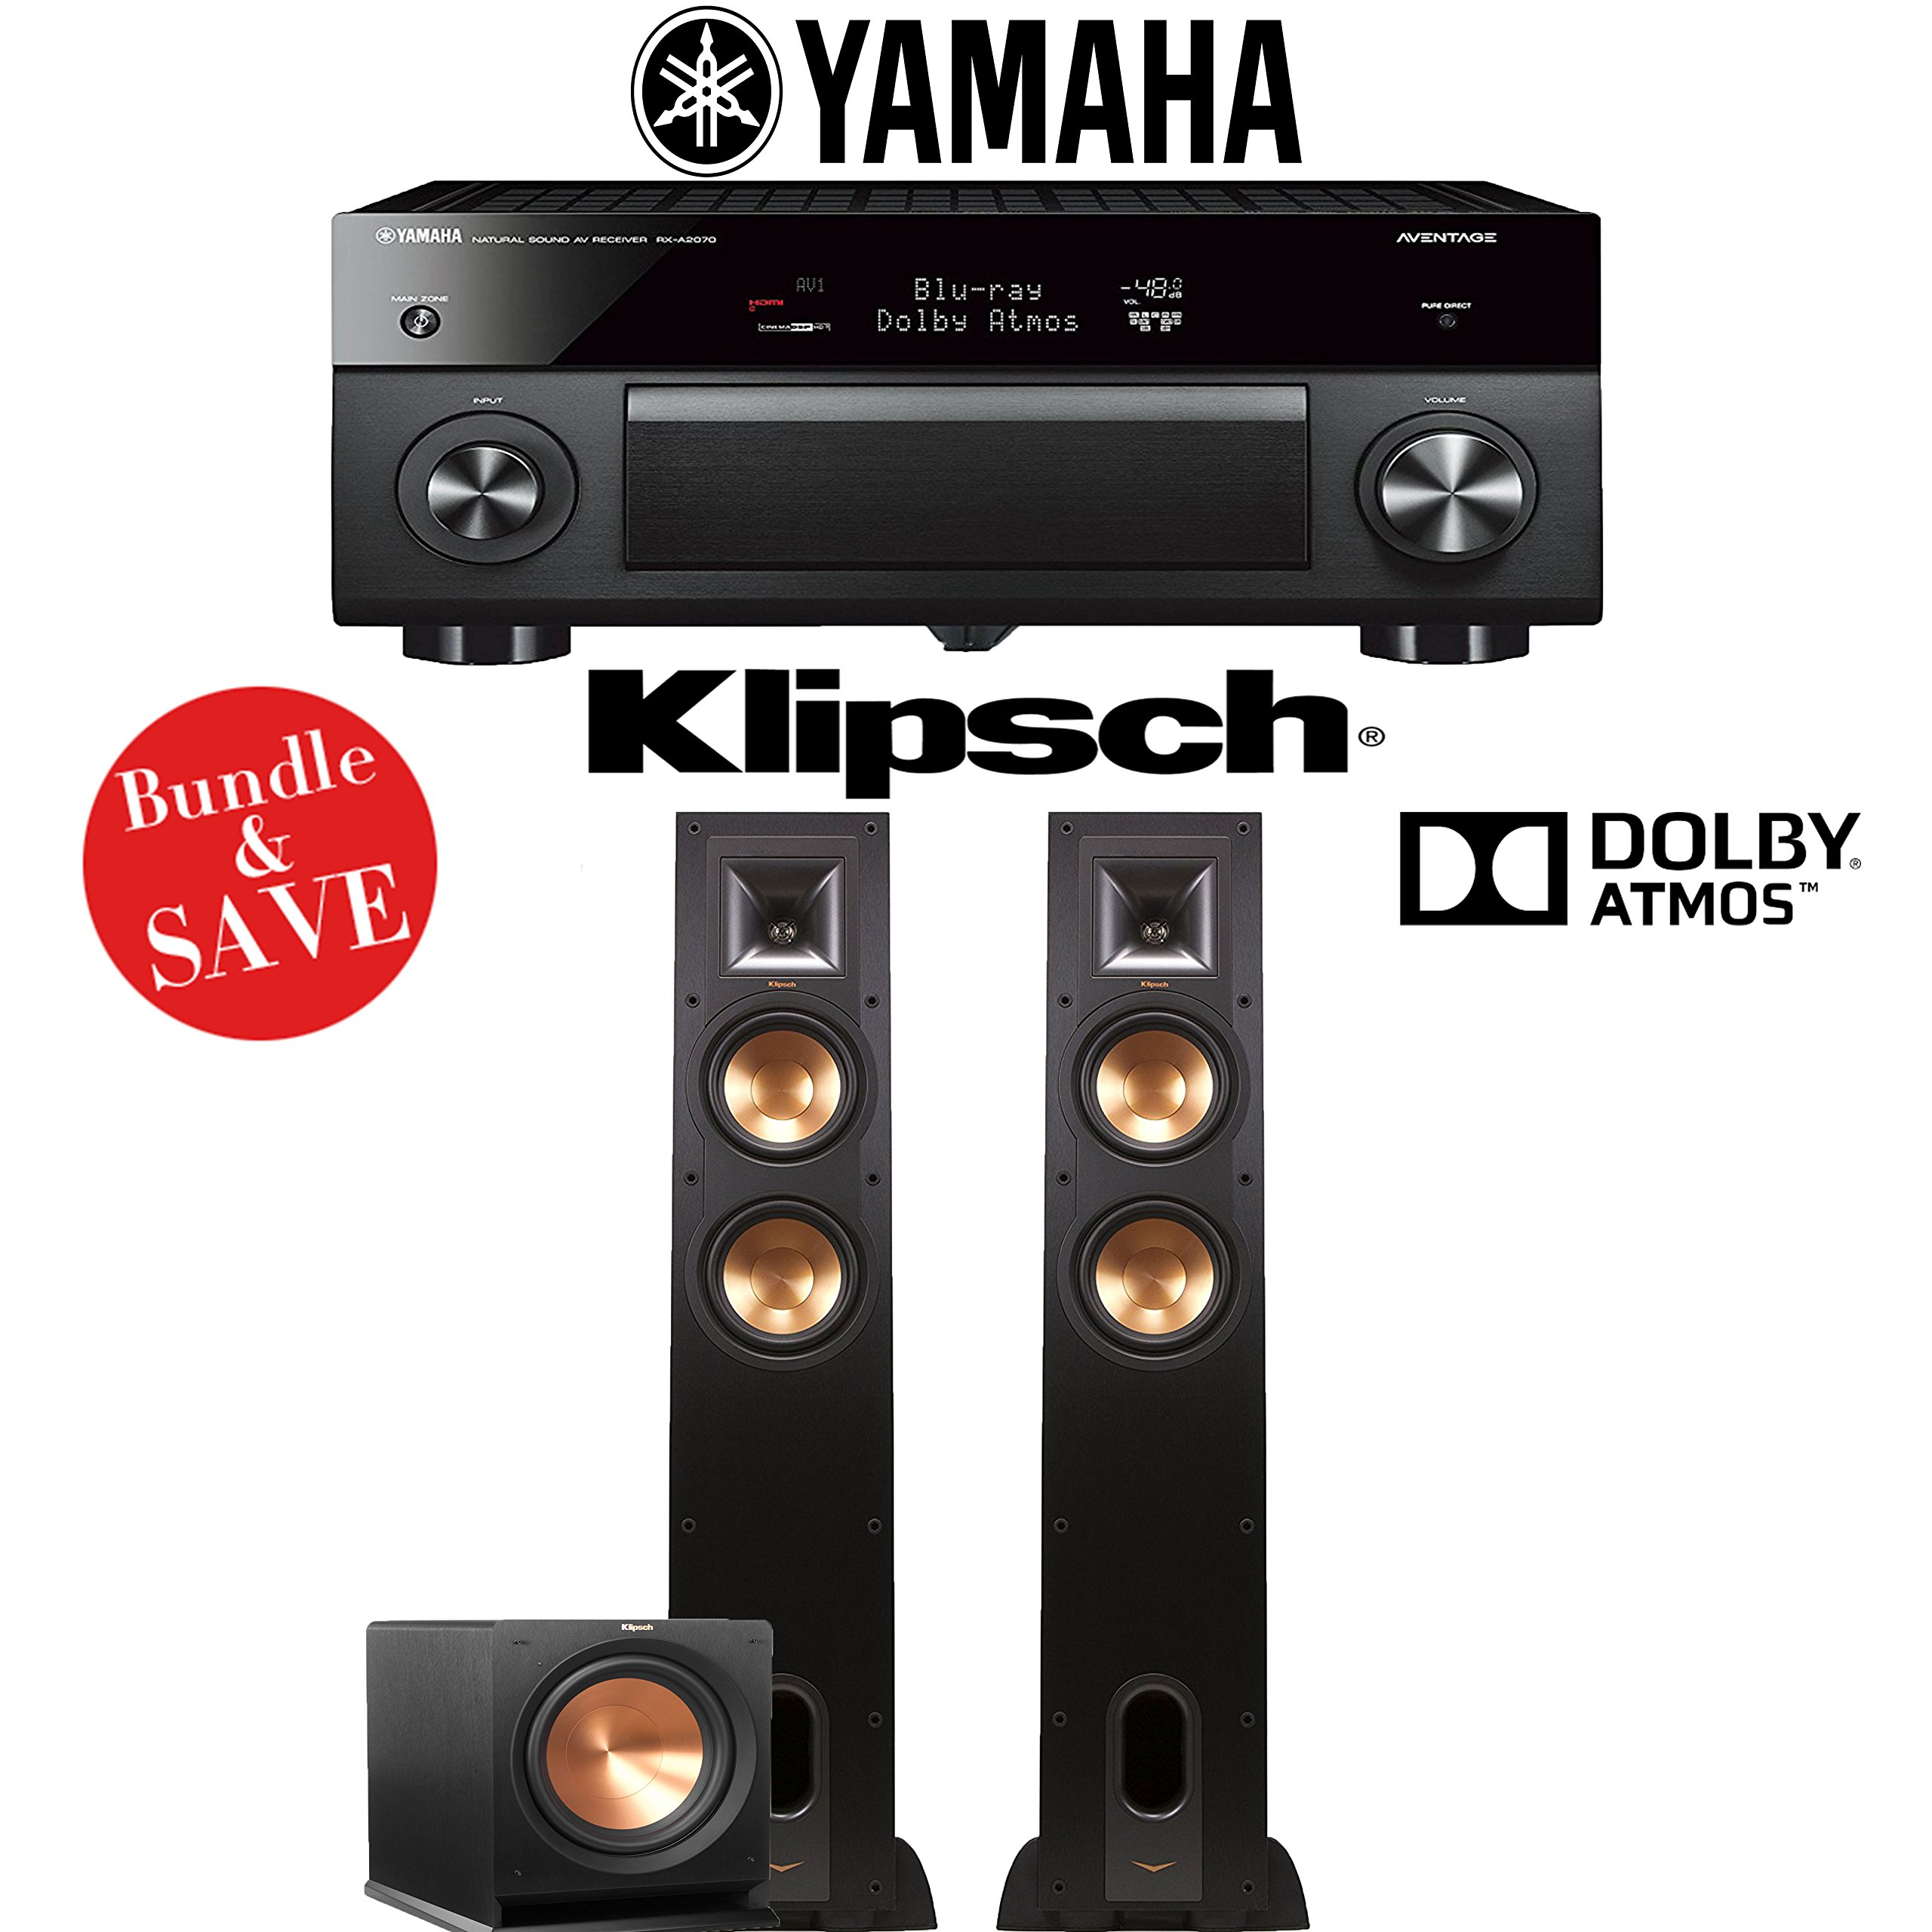 Yamaha AVENTAGE RX-A2070BL 9.2-Ch 4K Network AV Receiver + Klipsch R-26FA + Klipsch R-112SW - 2.1-Ch Dolby Atmos Home Theater Package by Yamaha